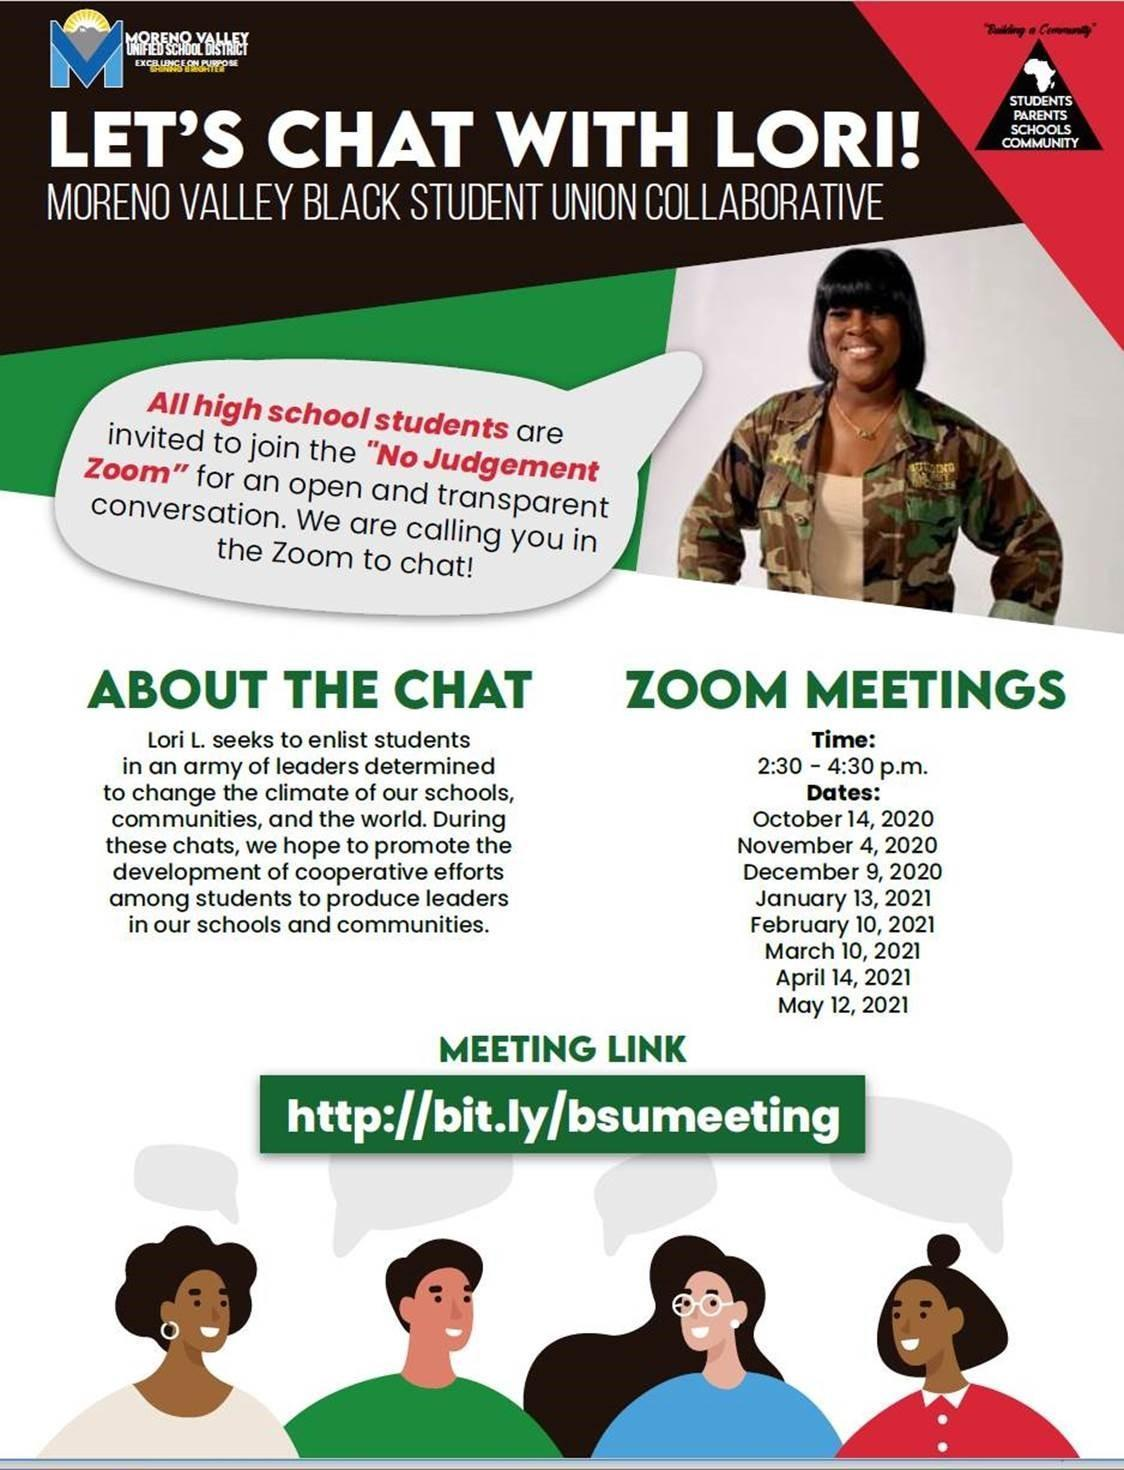 BSU Let's chat with Lori flyer